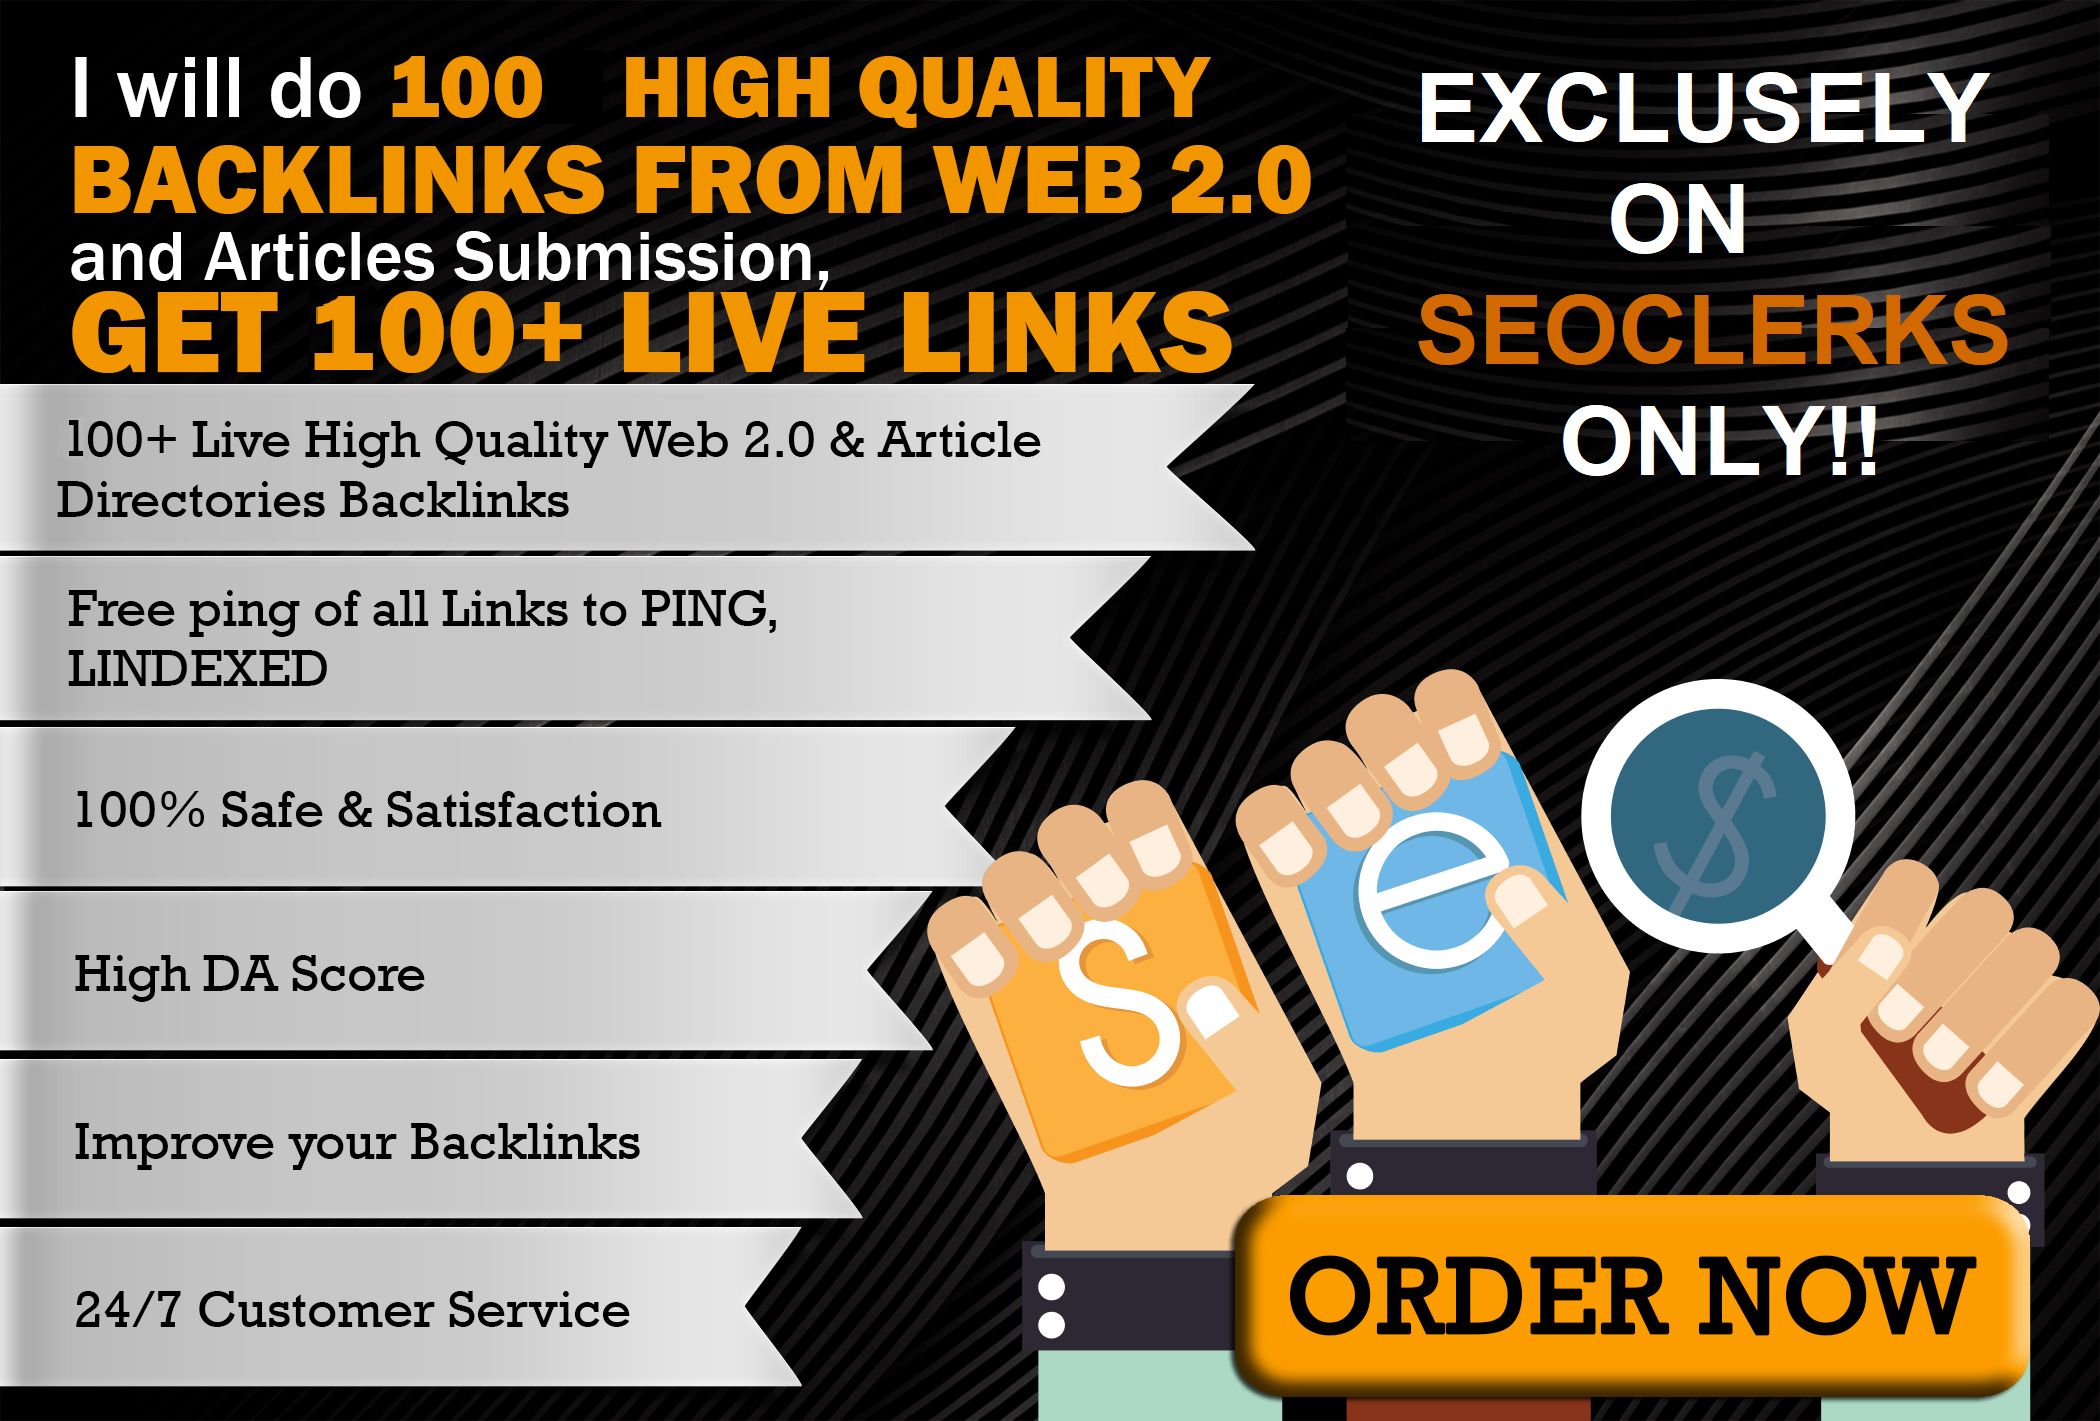 100 high quality seo backlinks from article submission and web 2.0